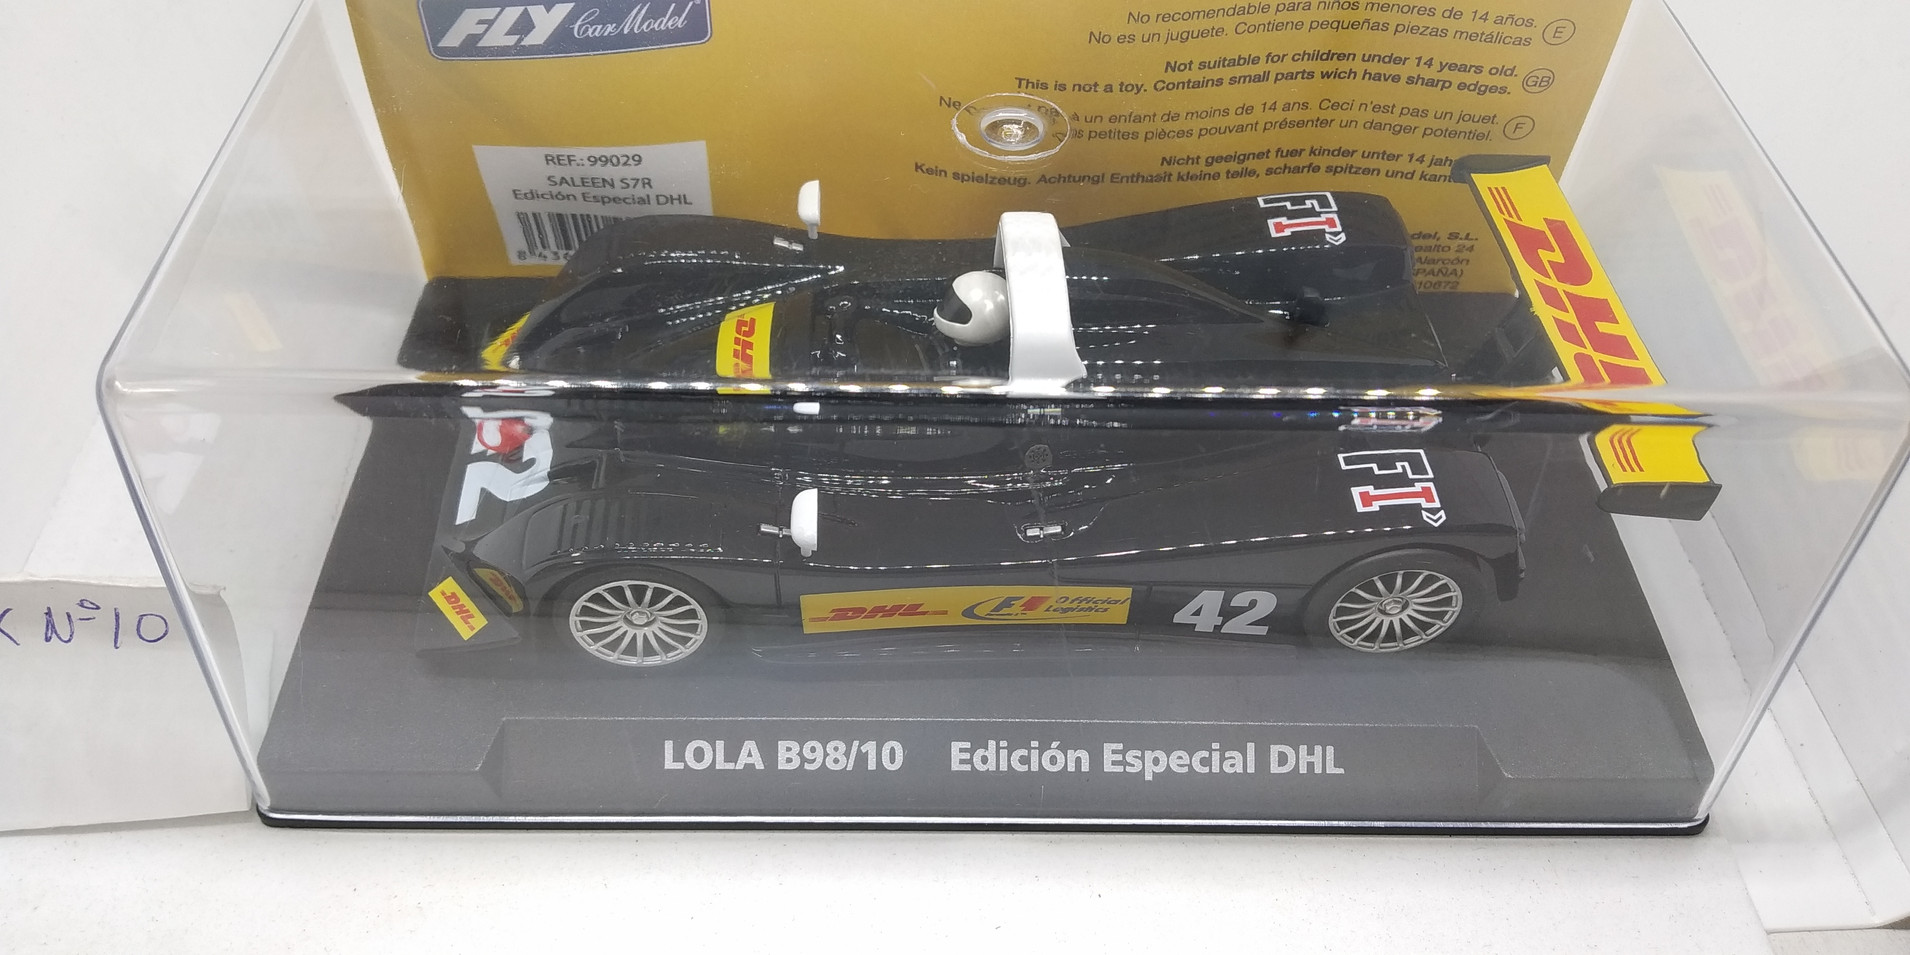 "LOLA B98/10 EDICION ESPECIAL""DHL"" REF.99029 FLY CAR MODEL"